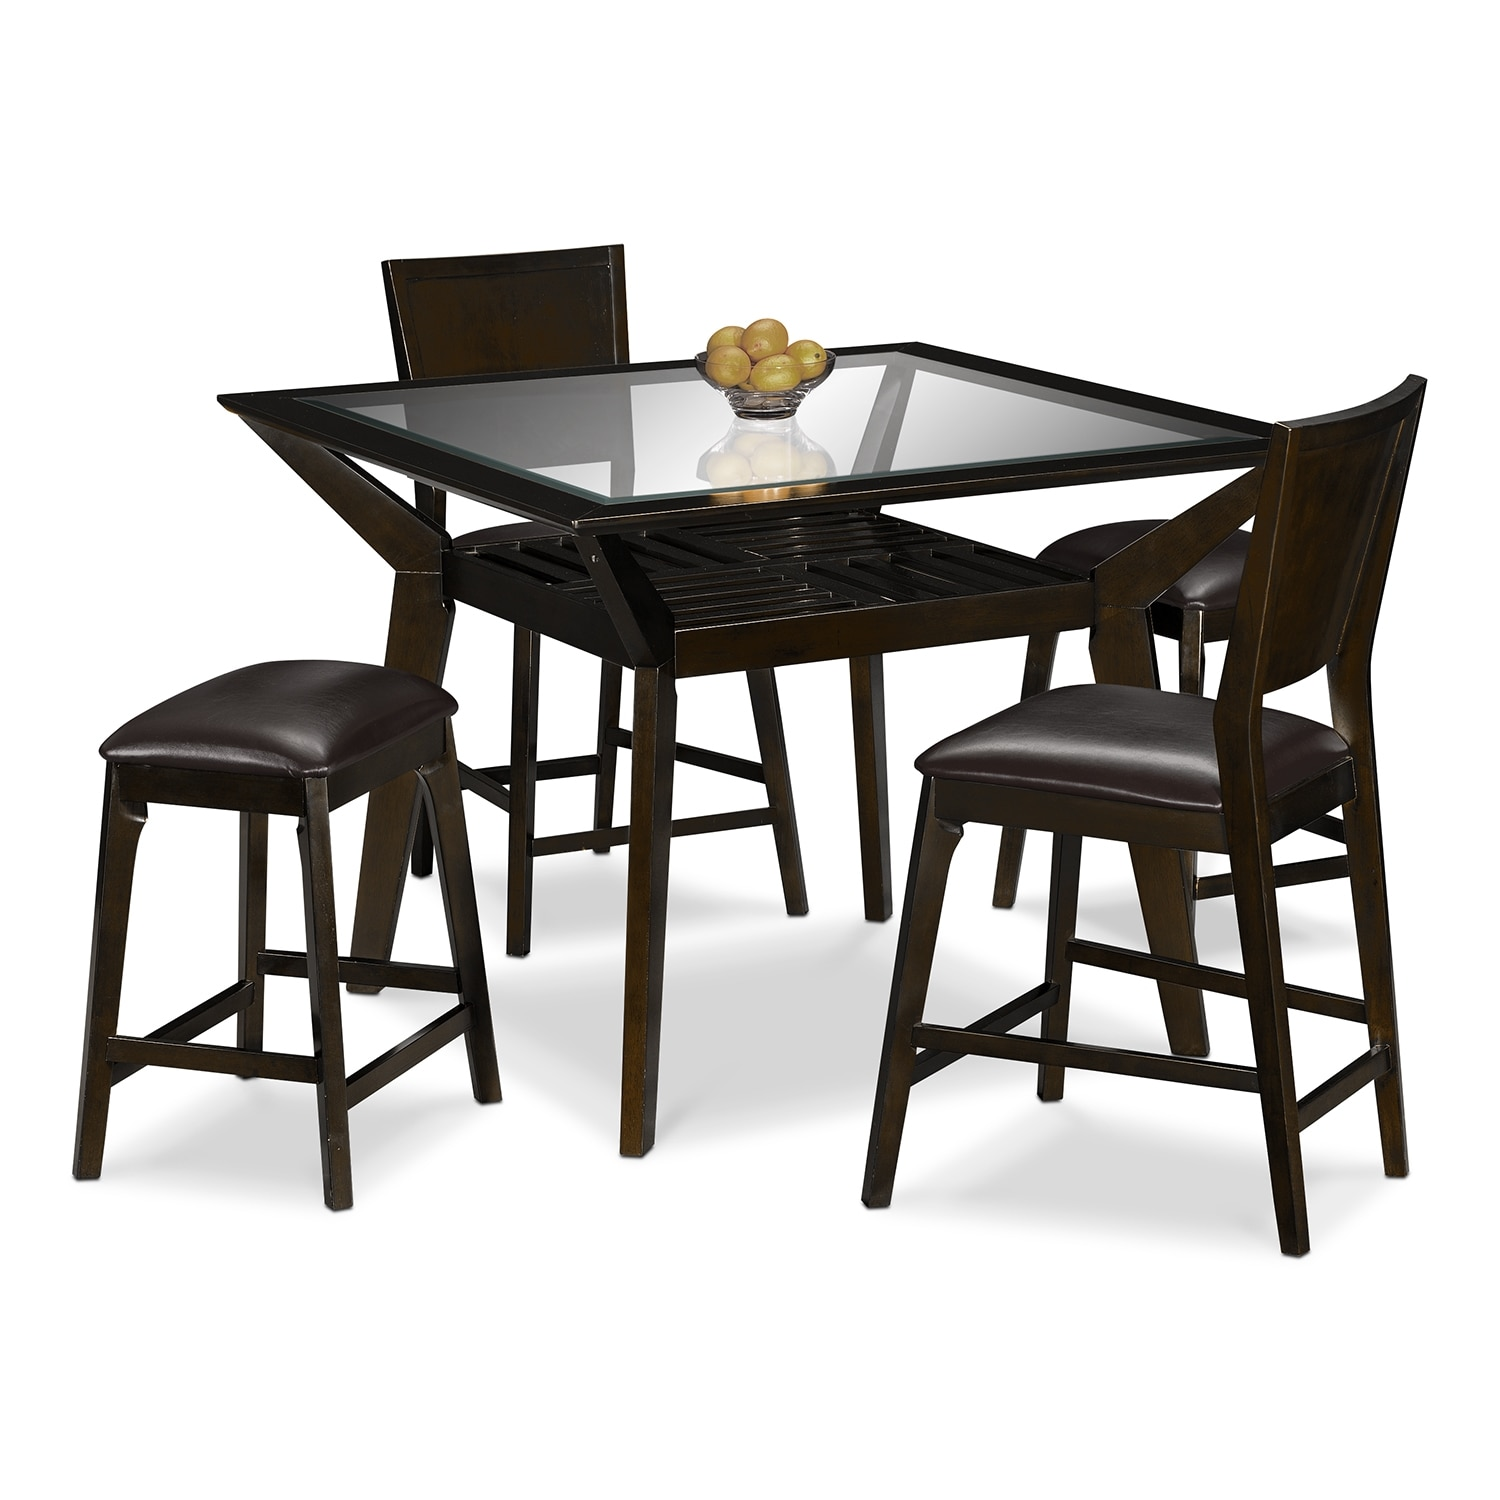 Dining Room Furniture - Mystic Counter-Height Table, 2 Chairs and 2 Backless Stools - Merlot and Chocolate